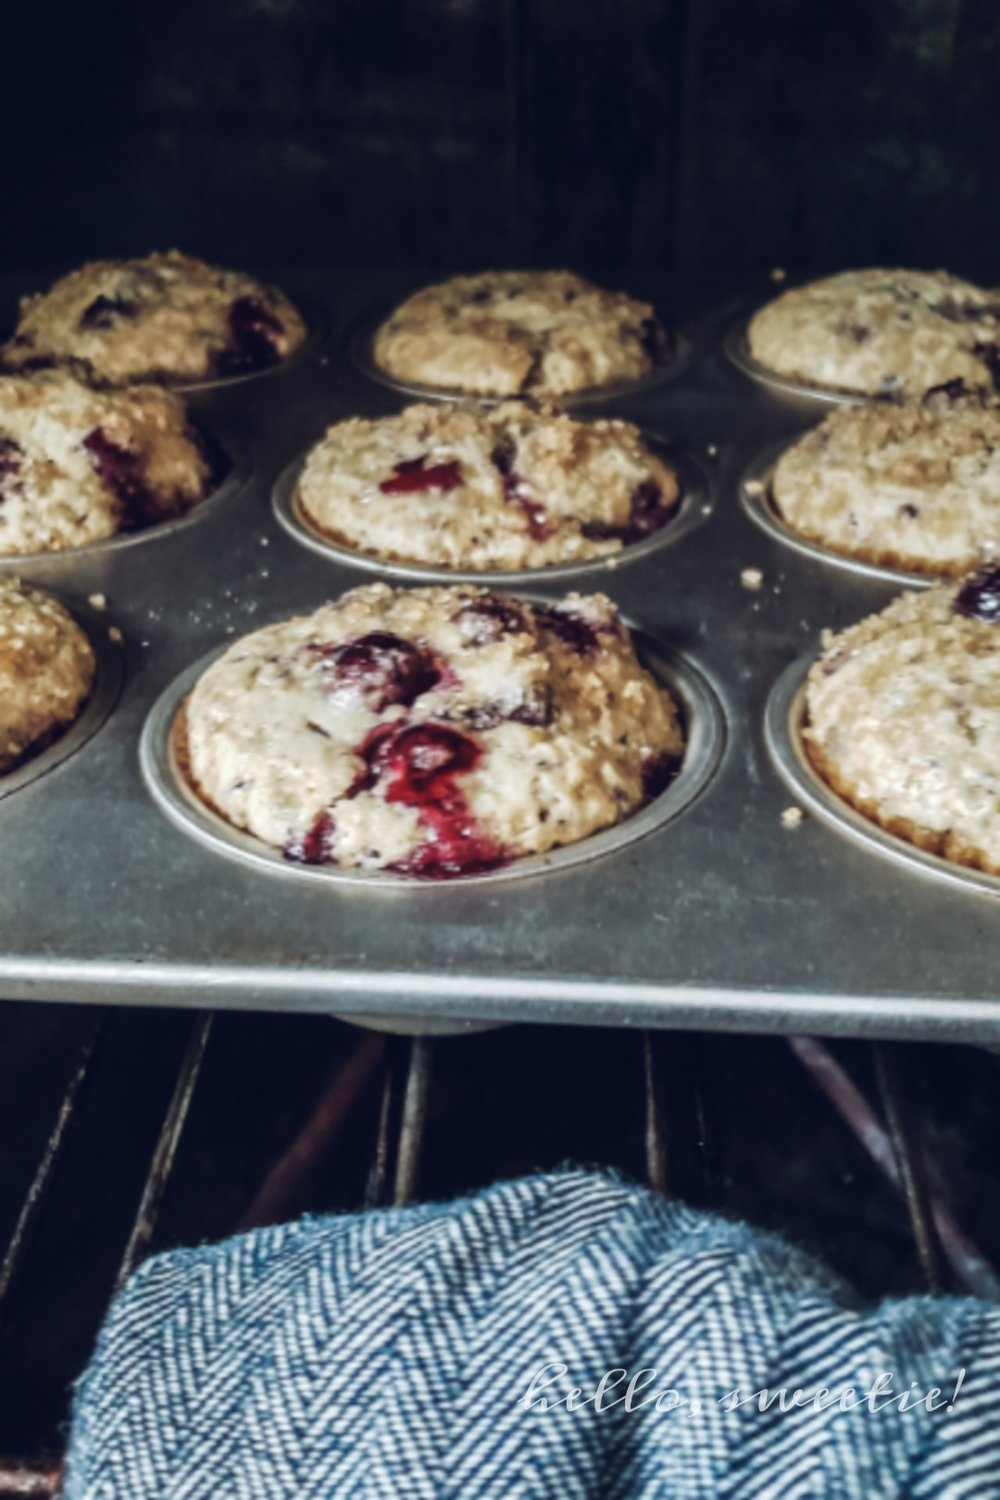 There's something special about freshly baked muffins that draws a crowd to the breakfast table!